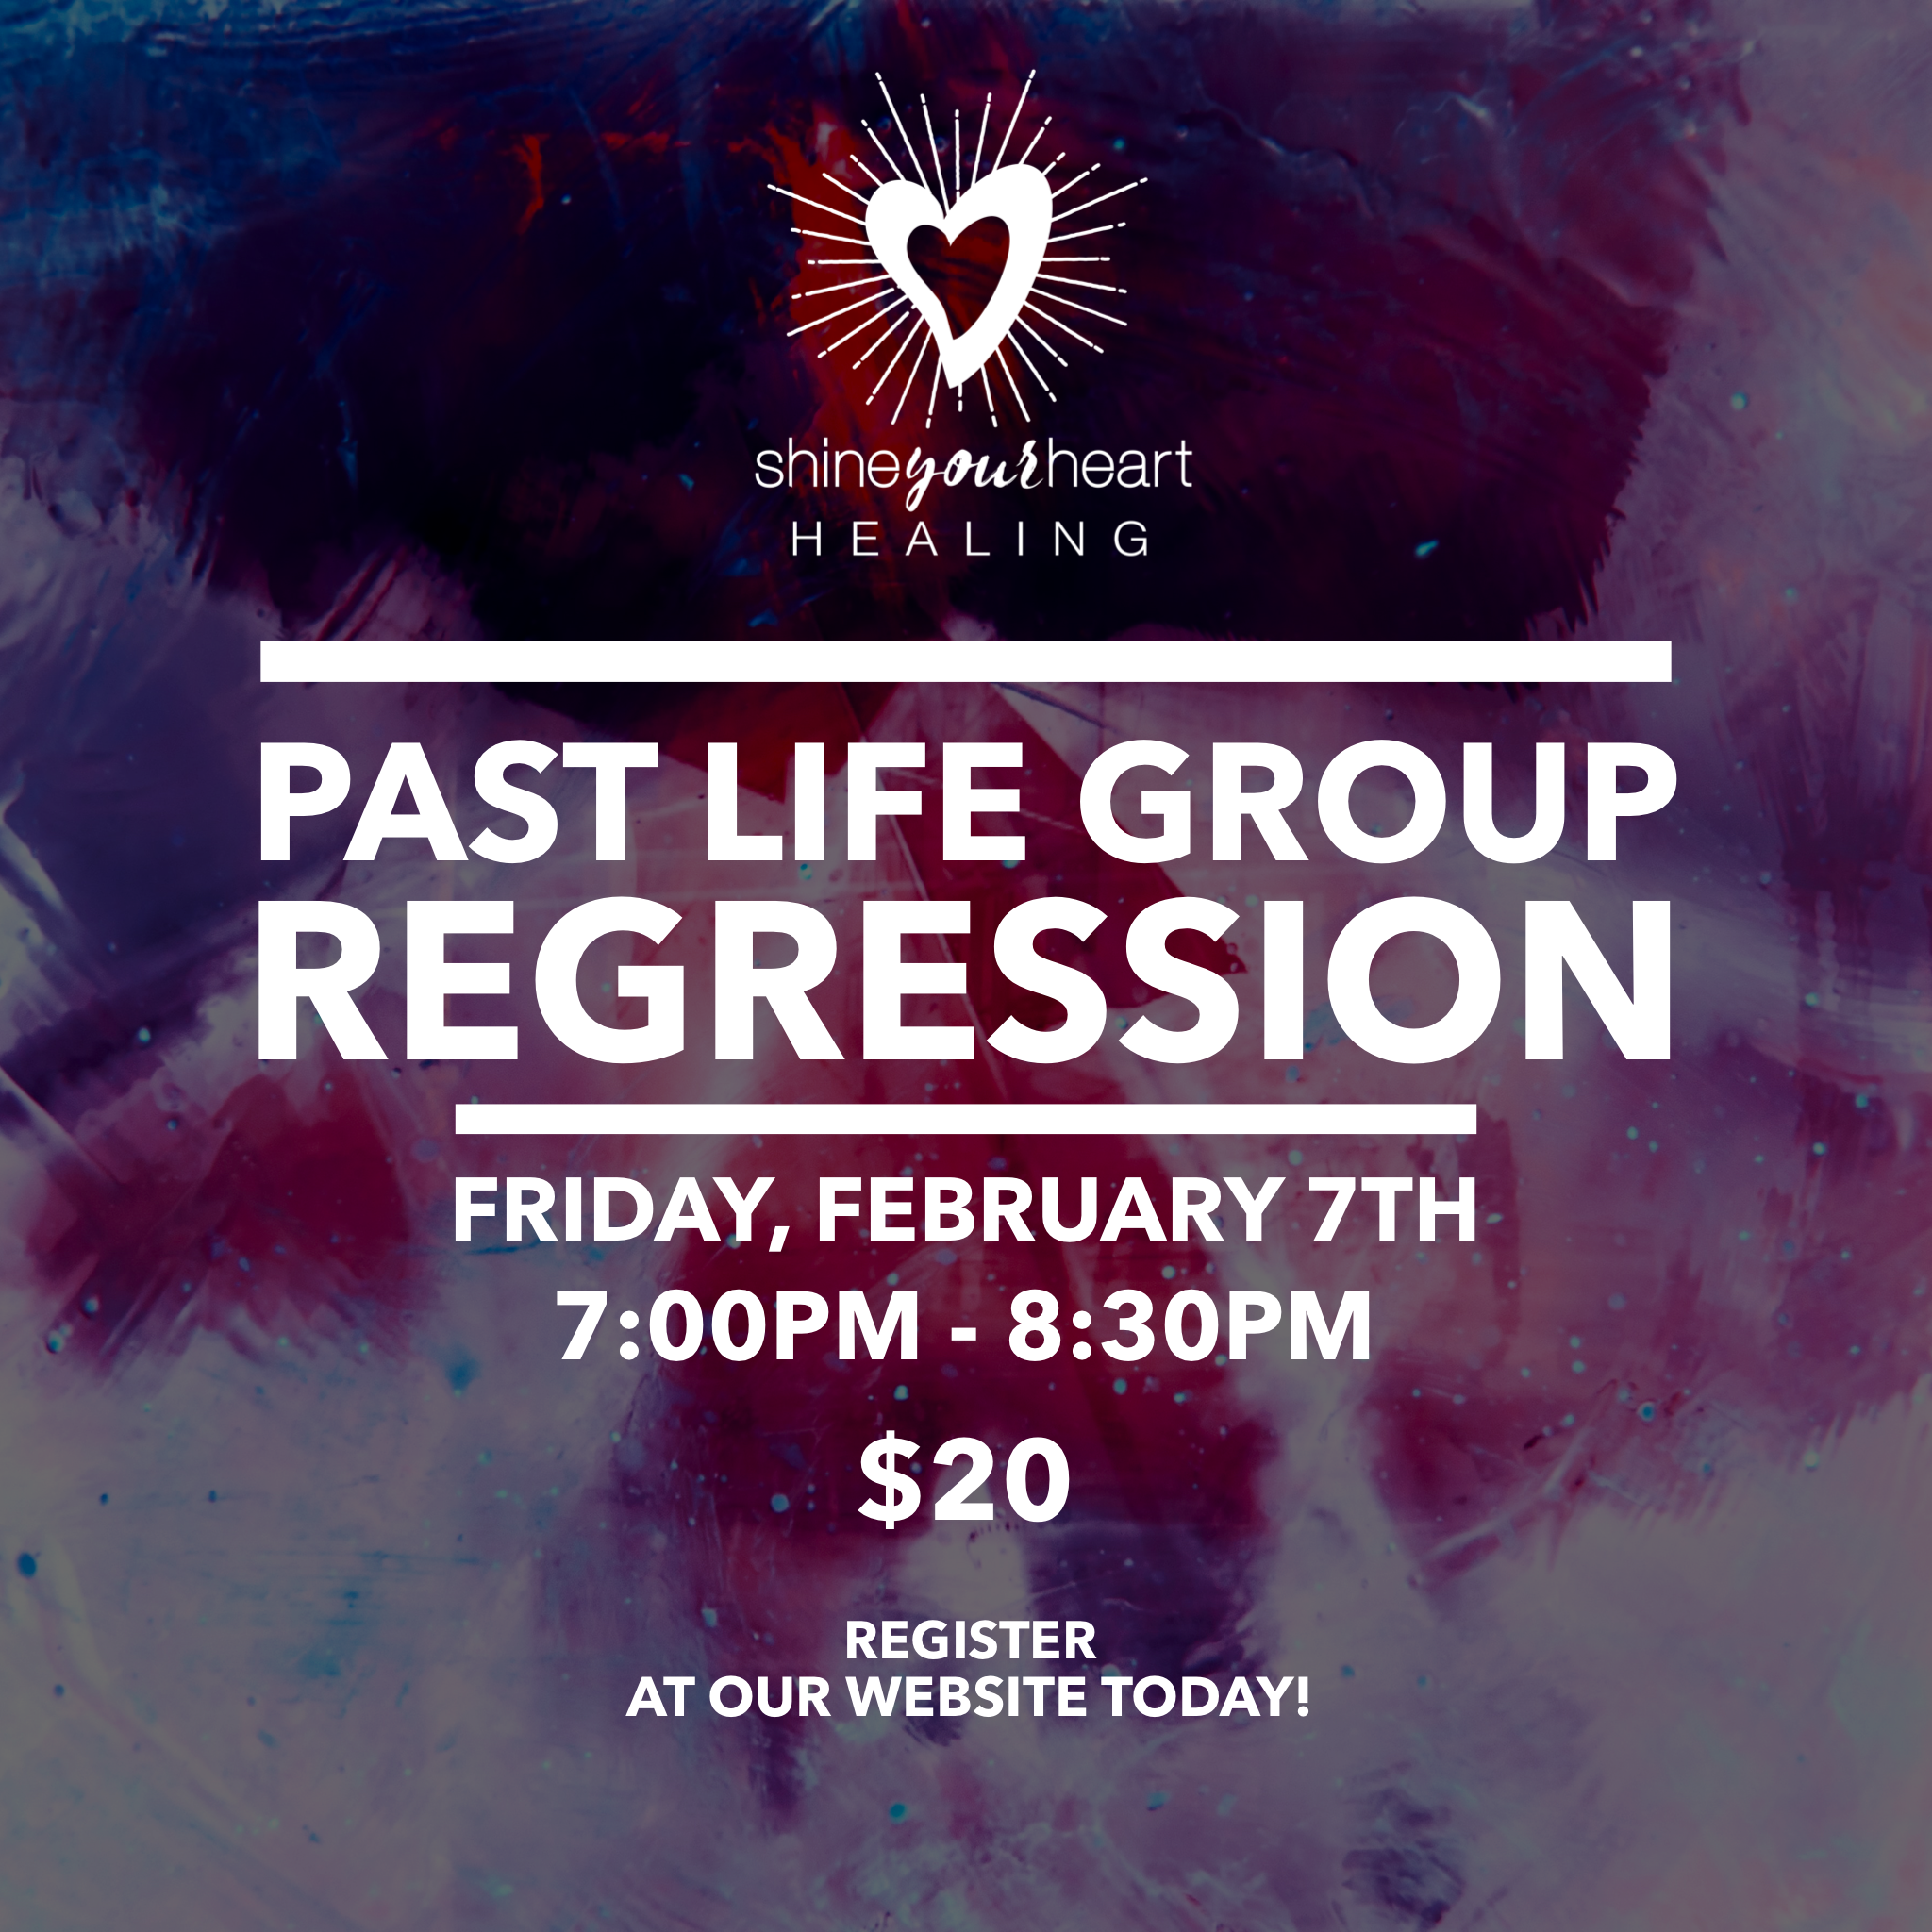 past life group regression